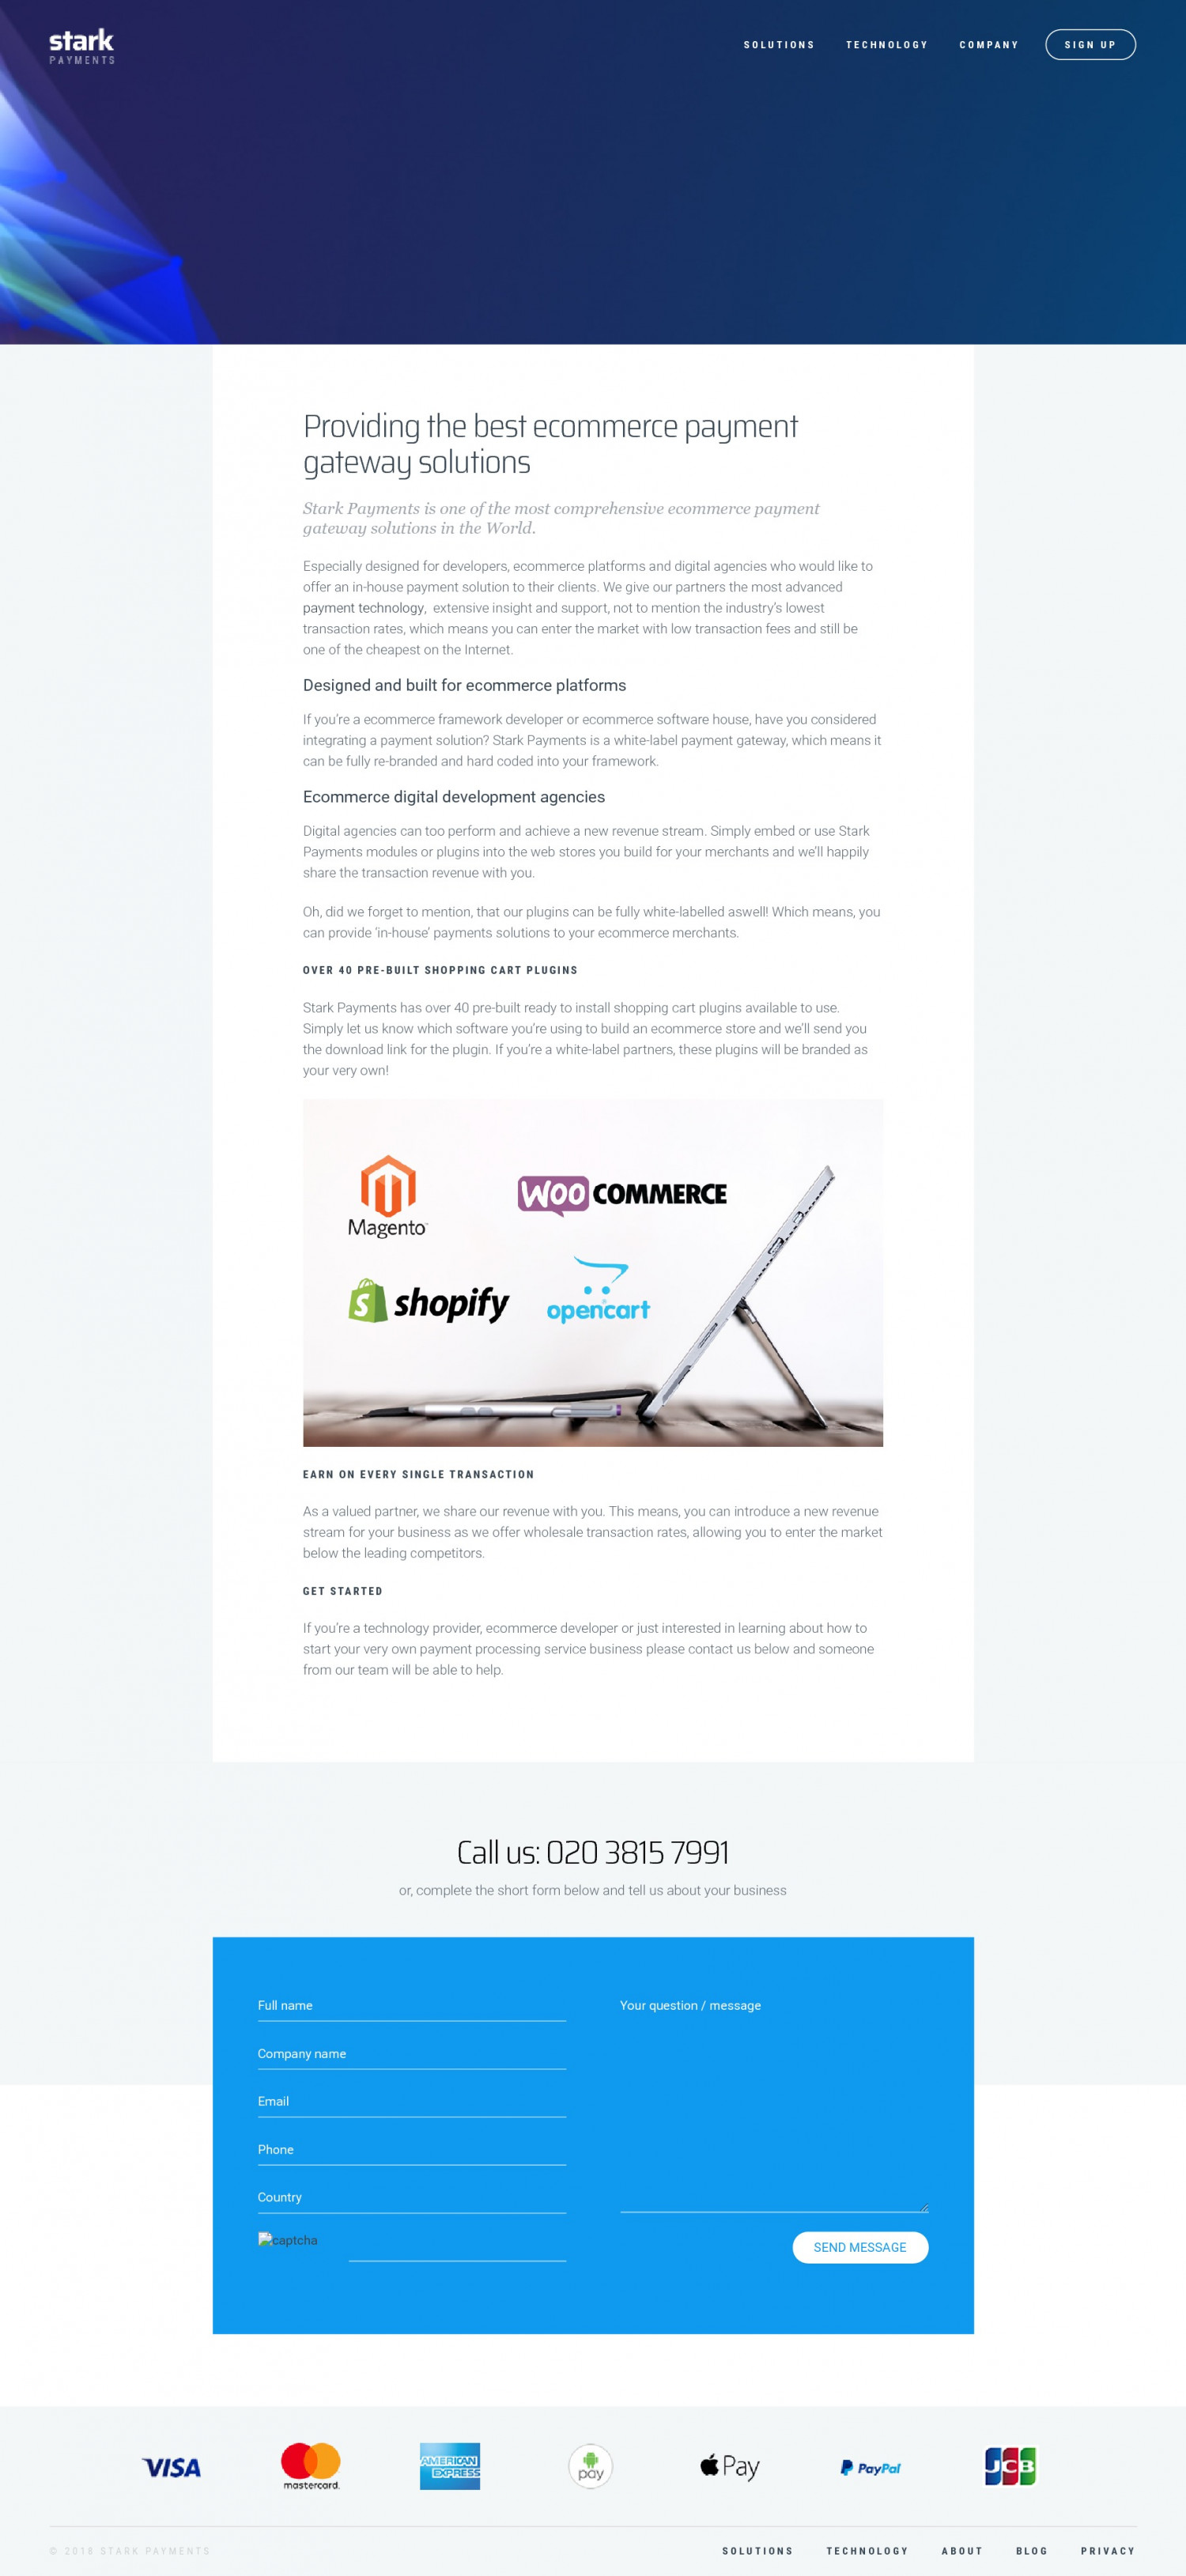 eCommerce Payment Gateway Solutions - Stark Payments Infographic